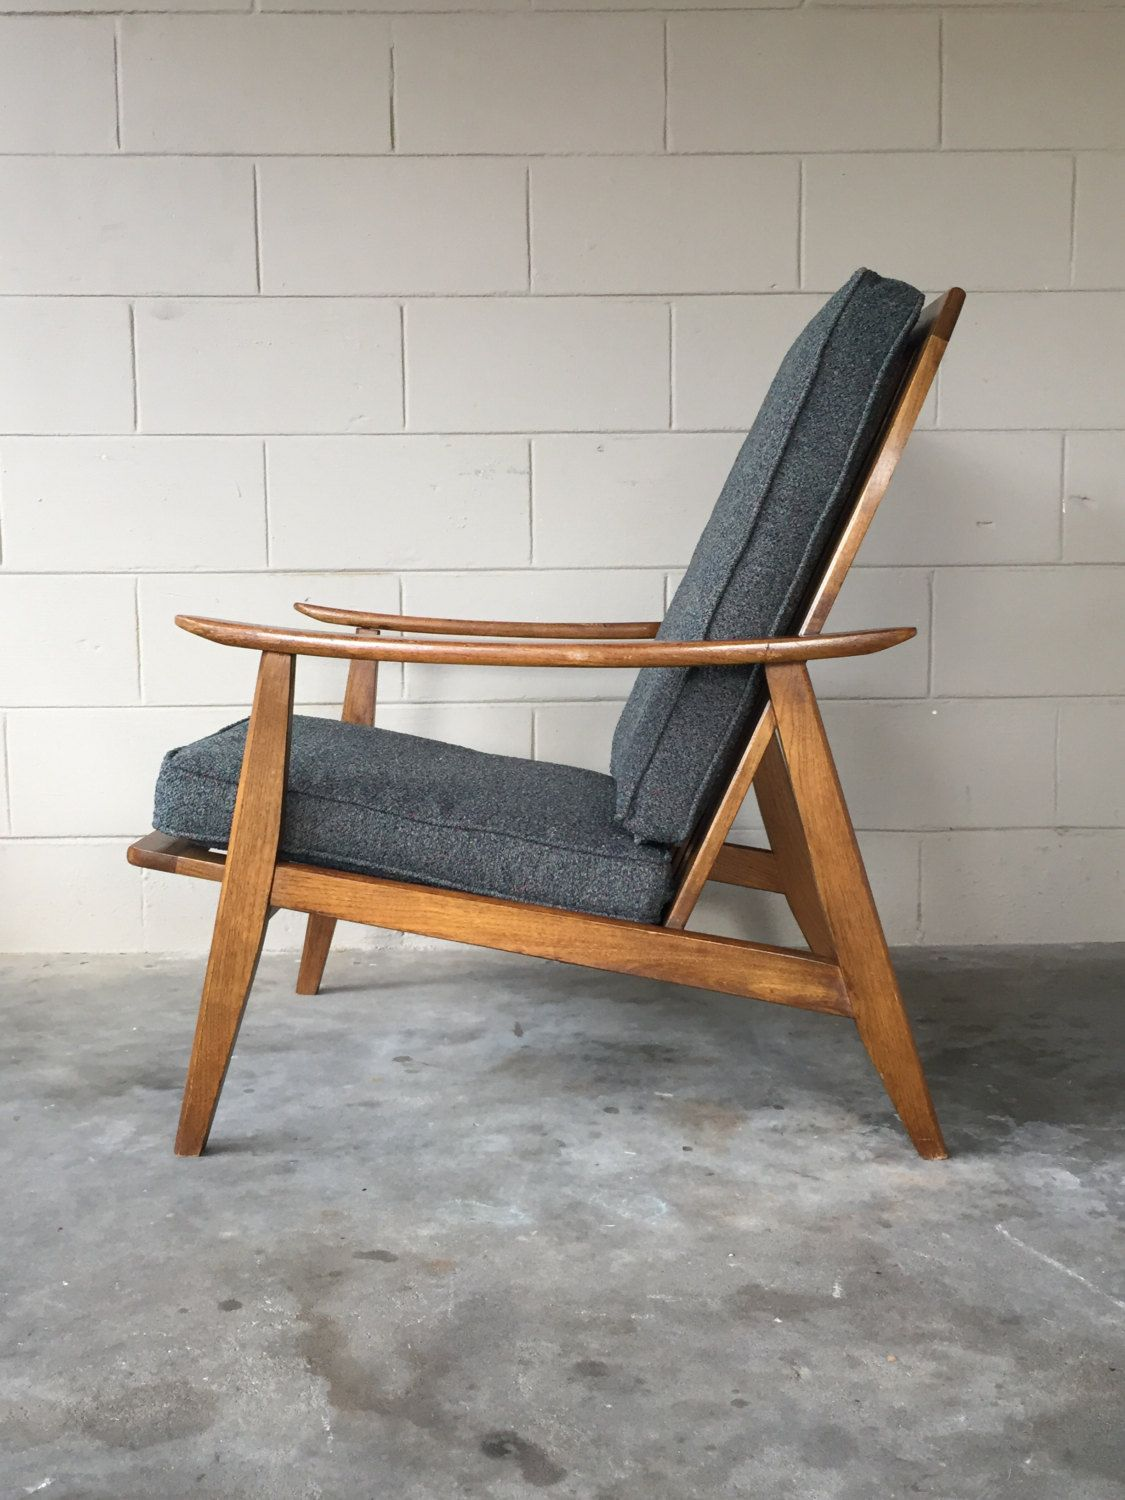 Magnificent Mid Century Modern Lounge Chair Retro High Back Arm Chair Spiritservingveterans Wood Chair Design Ideas Spiritservingveteransorg